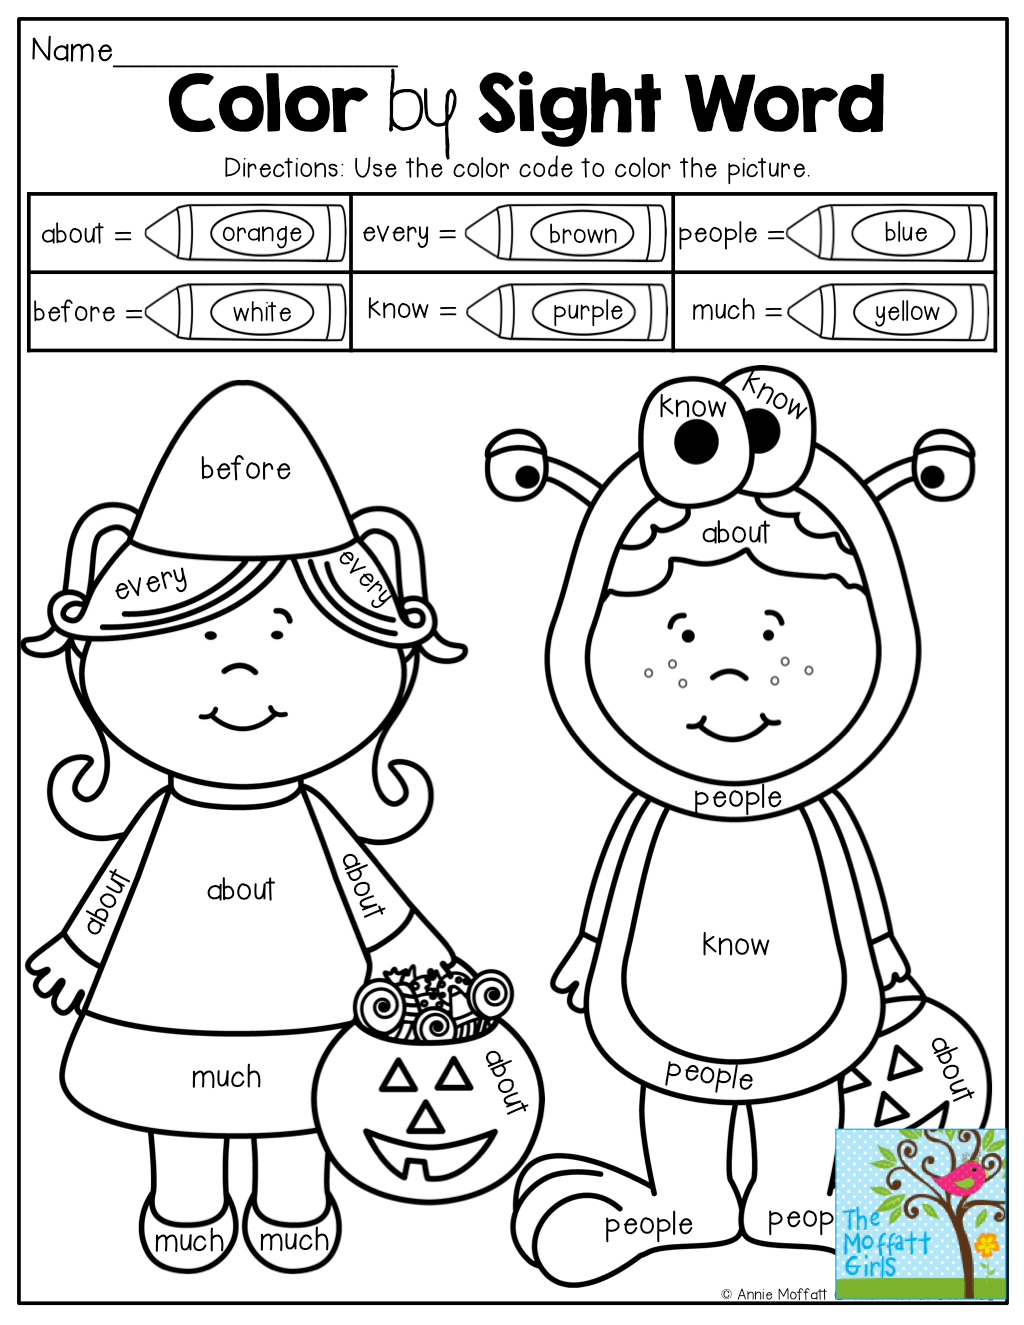 Color By Sight Word And Other Fun Printables